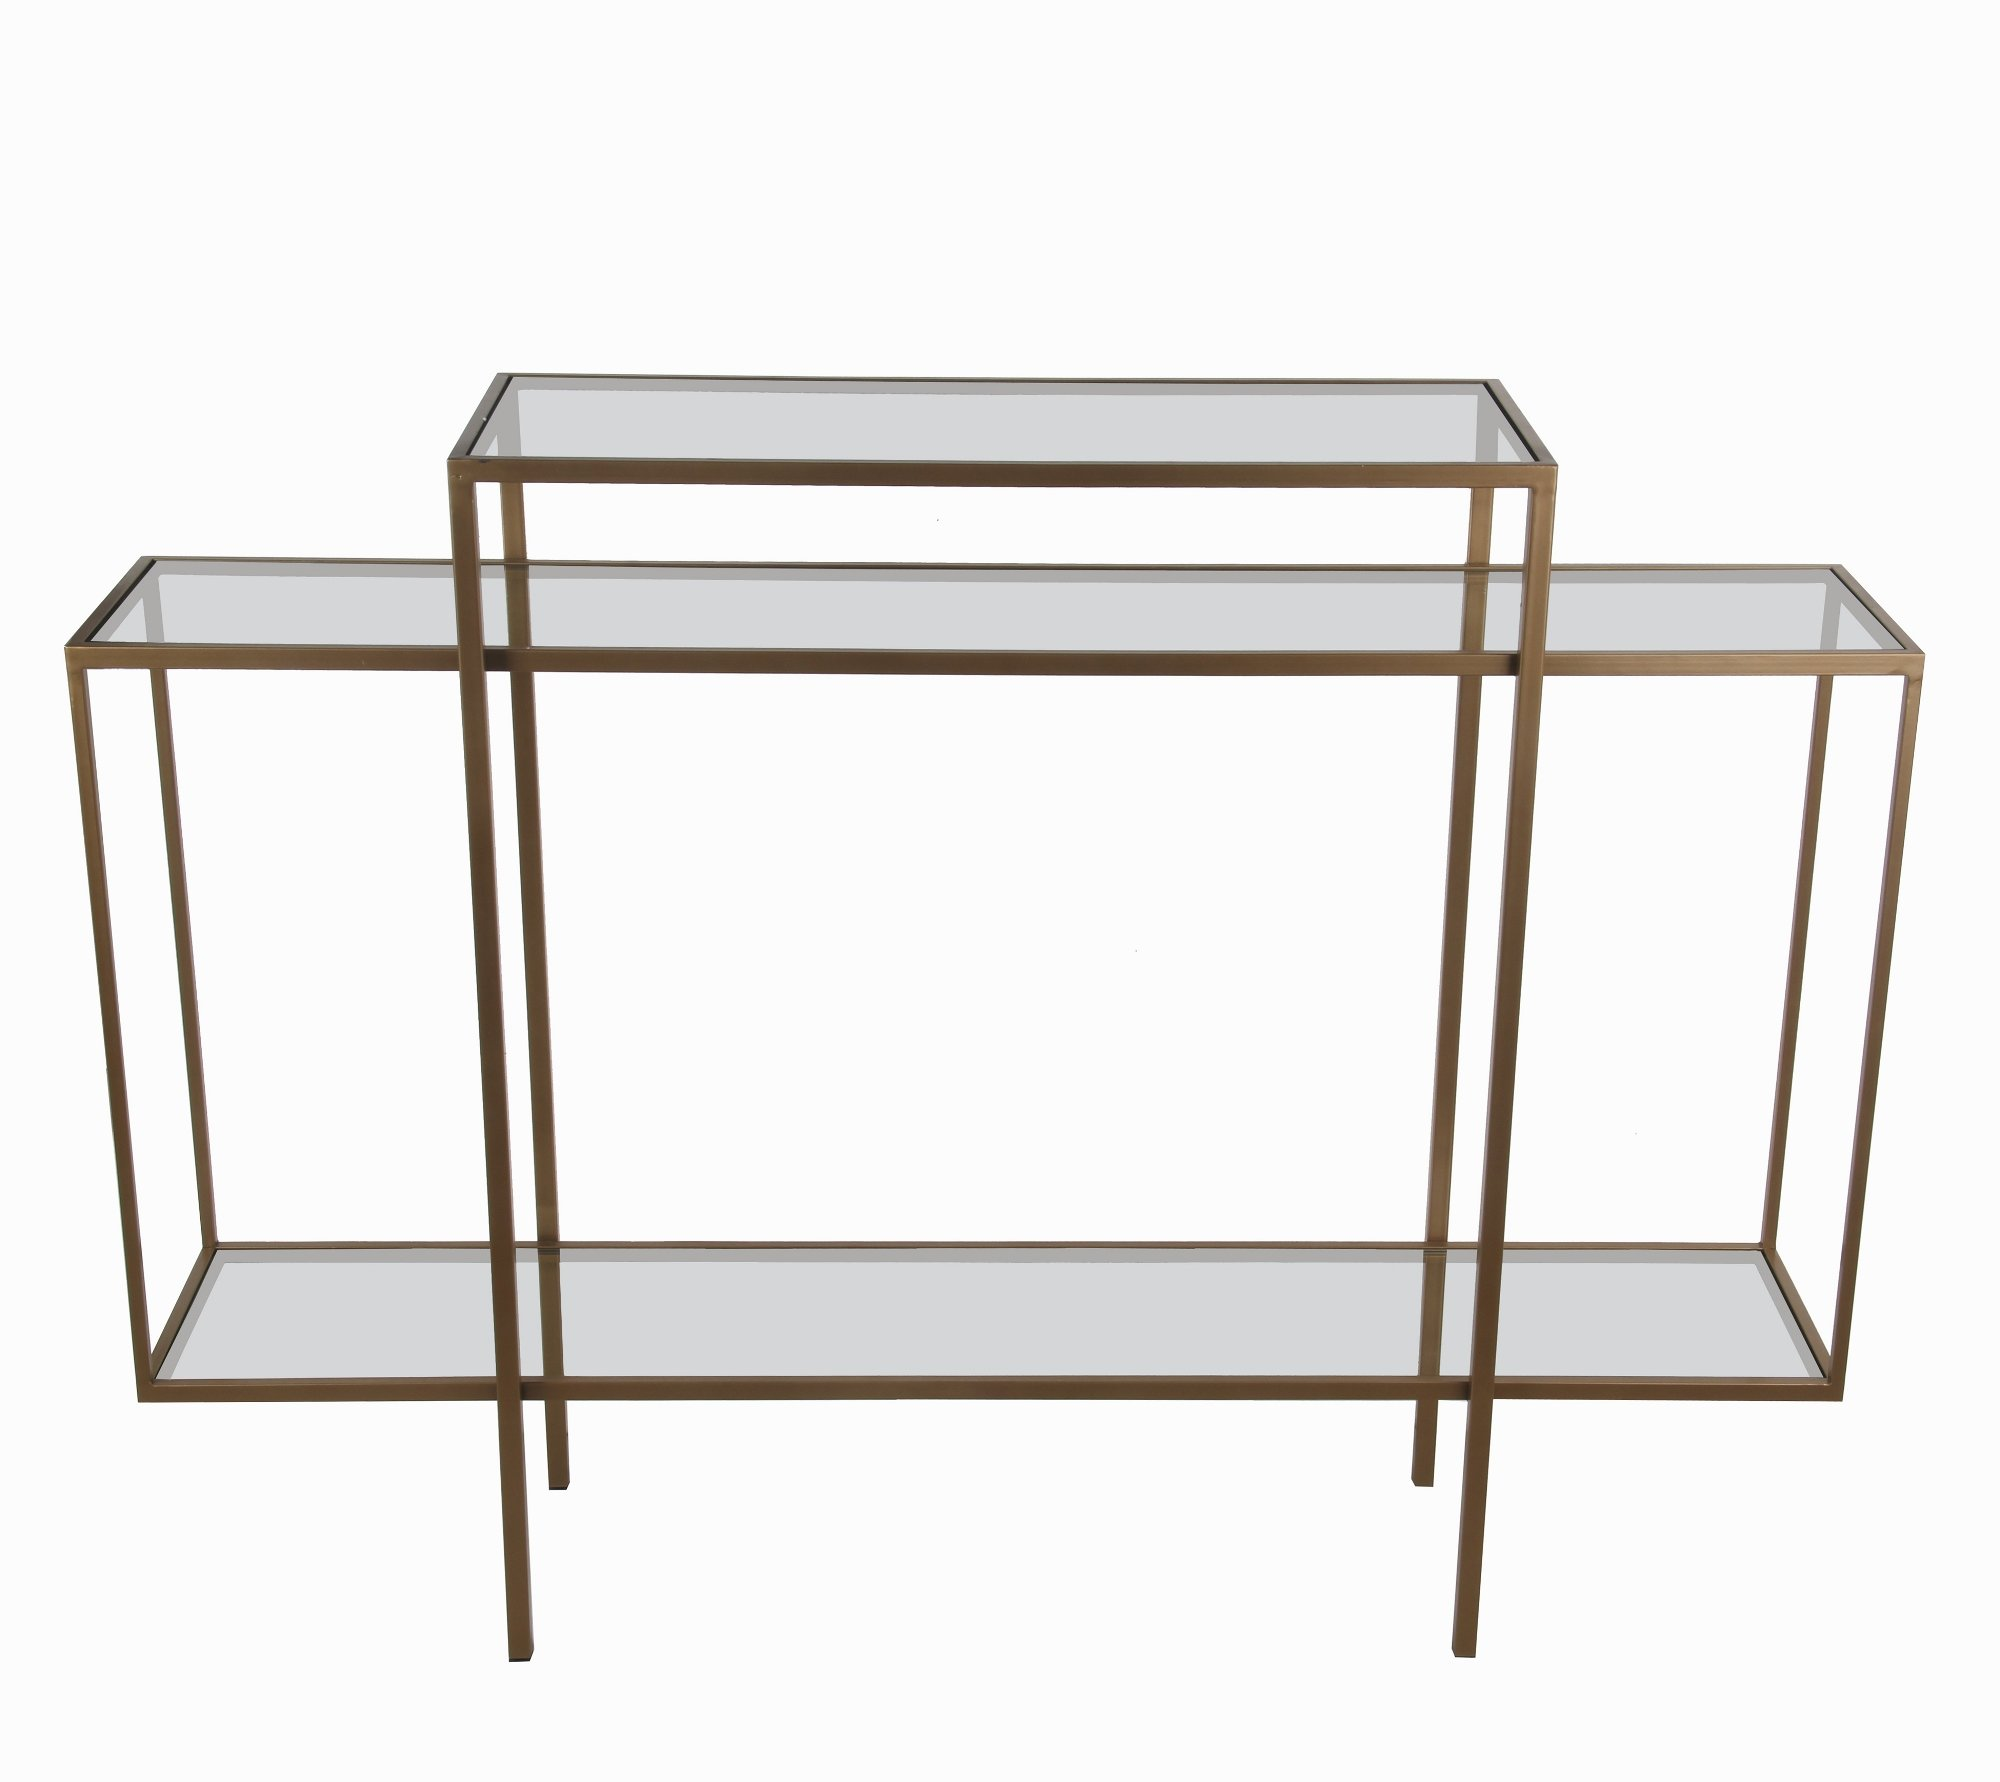 accent consoles hoover skinny console table hooper pottery barn living room traditional cherry furniture modern glass coffee designs narrow side with shelves inexpensive patio